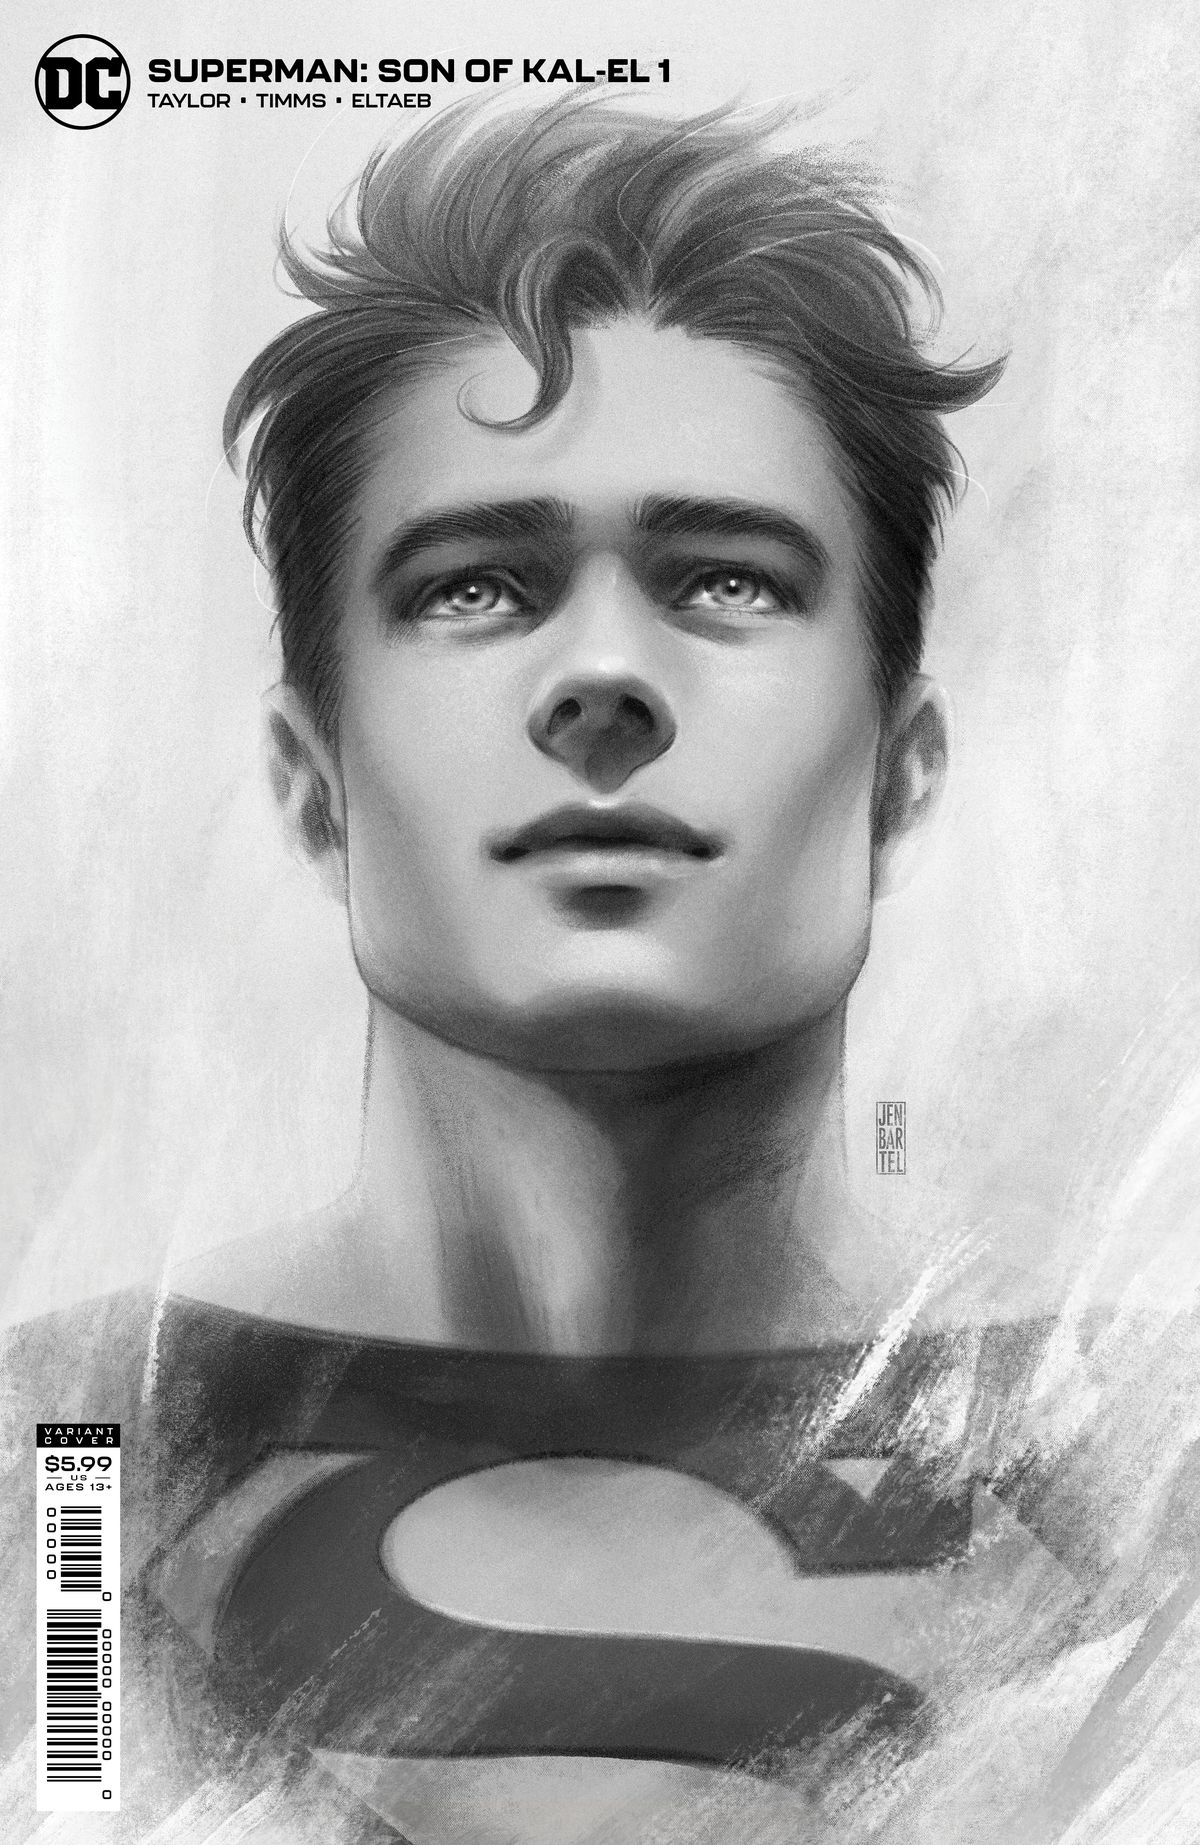 A greyscale rendering of Jon Kent/Superboy/Superman on the cover of Superman: Son of Kal-El #1, DC Comics (2021).